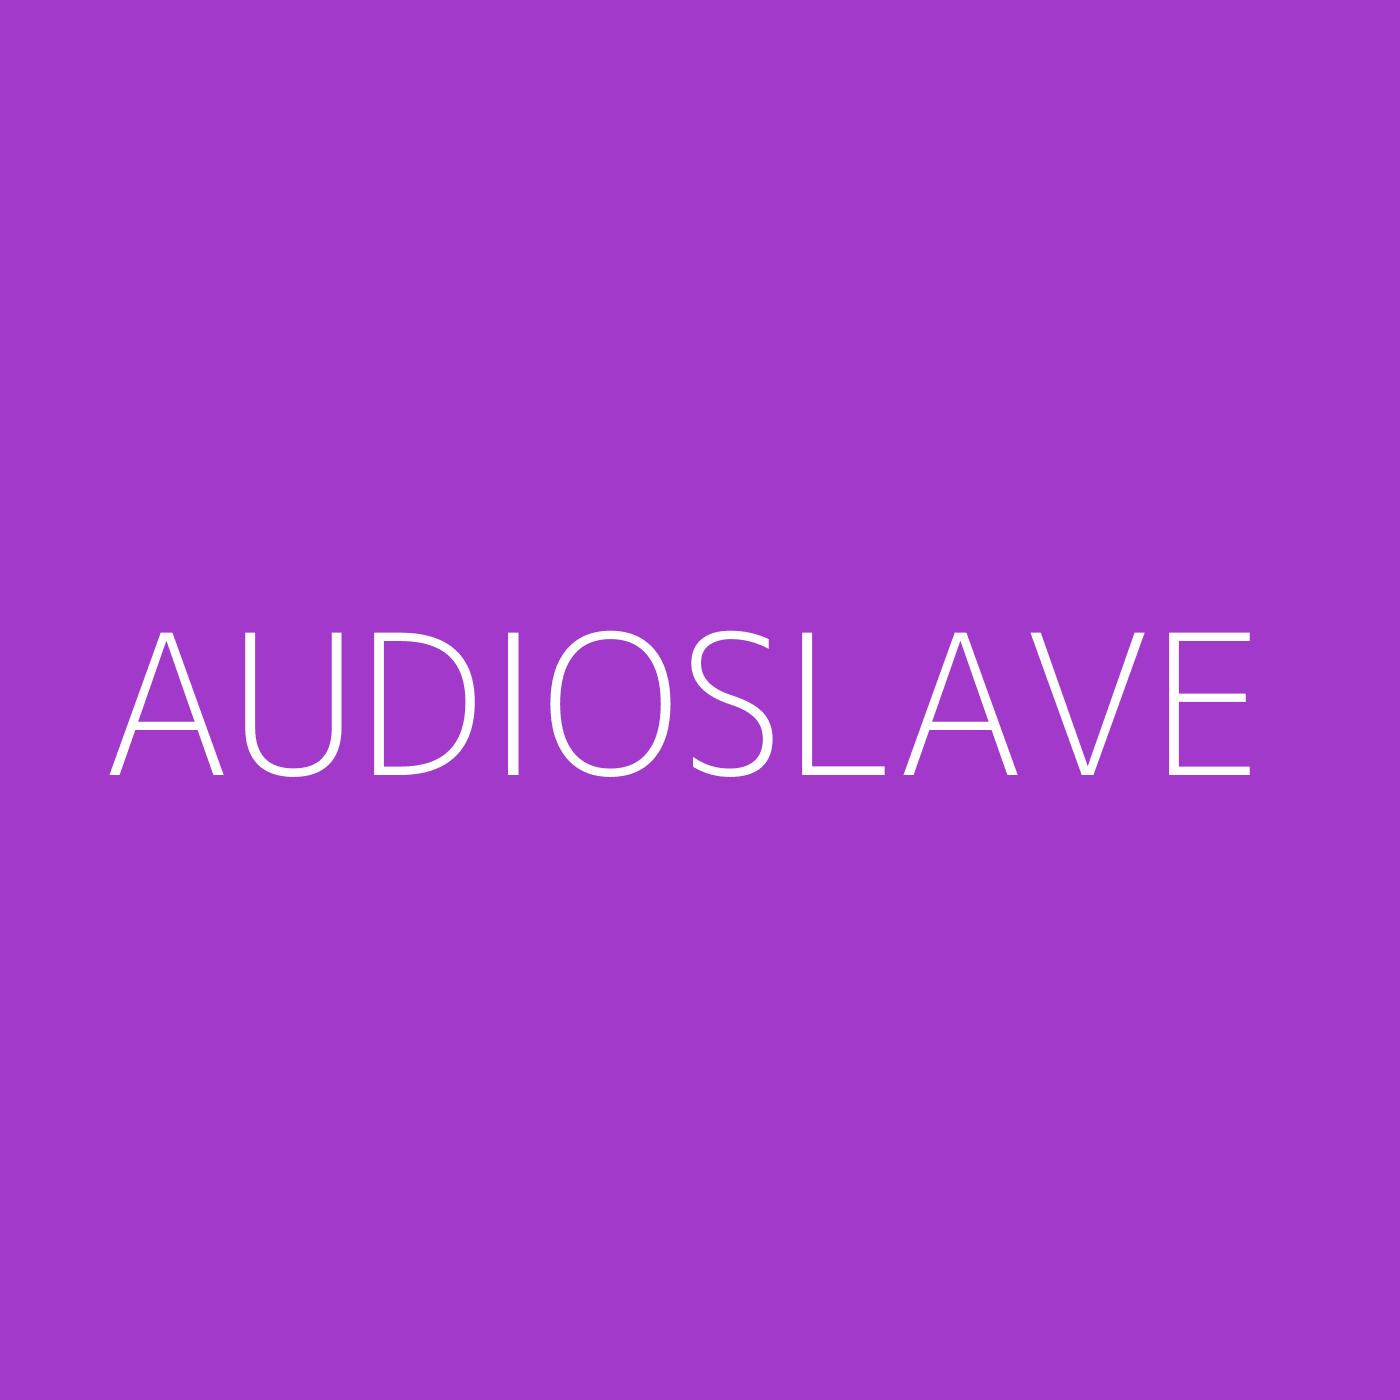 Audioslave Playlist Artwork